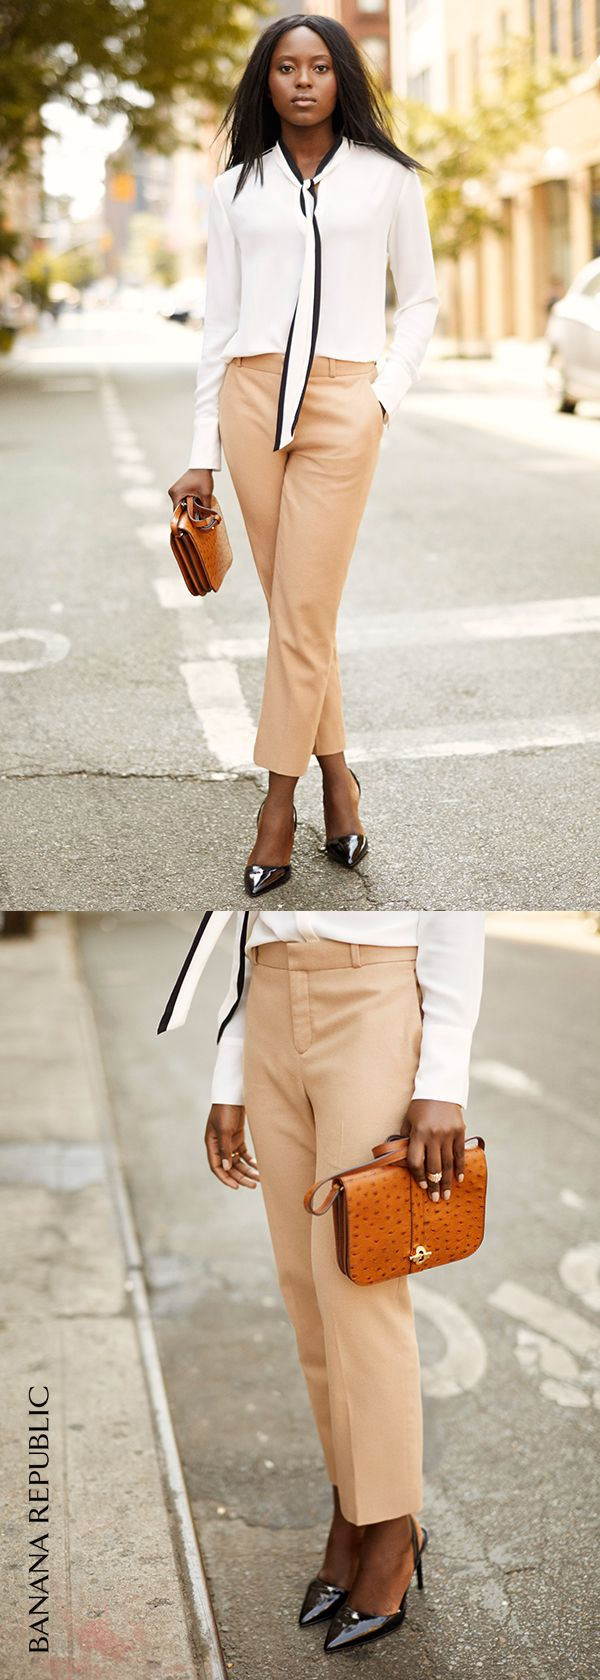 Your new go-to. The Avery pant has a trouser fit through the hip and thigh that creates an effortlessly chic tailored silhouette. Bonus: the crop shows off your new heels.